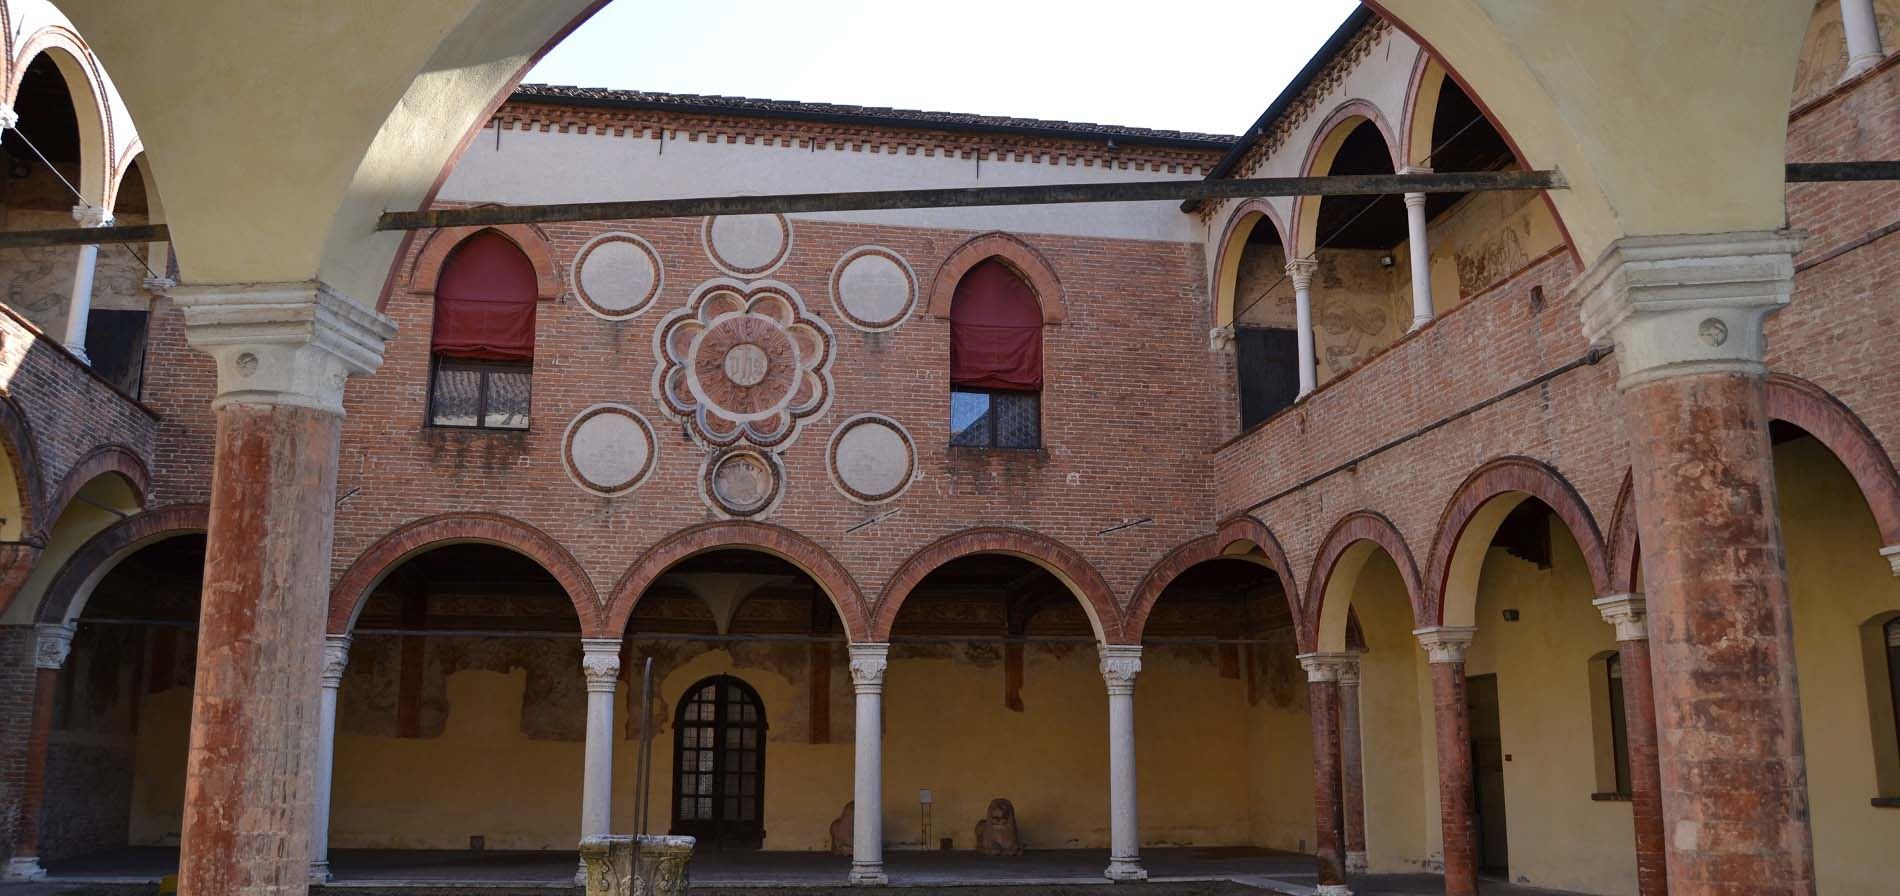 Ferrara, The Renaissance city